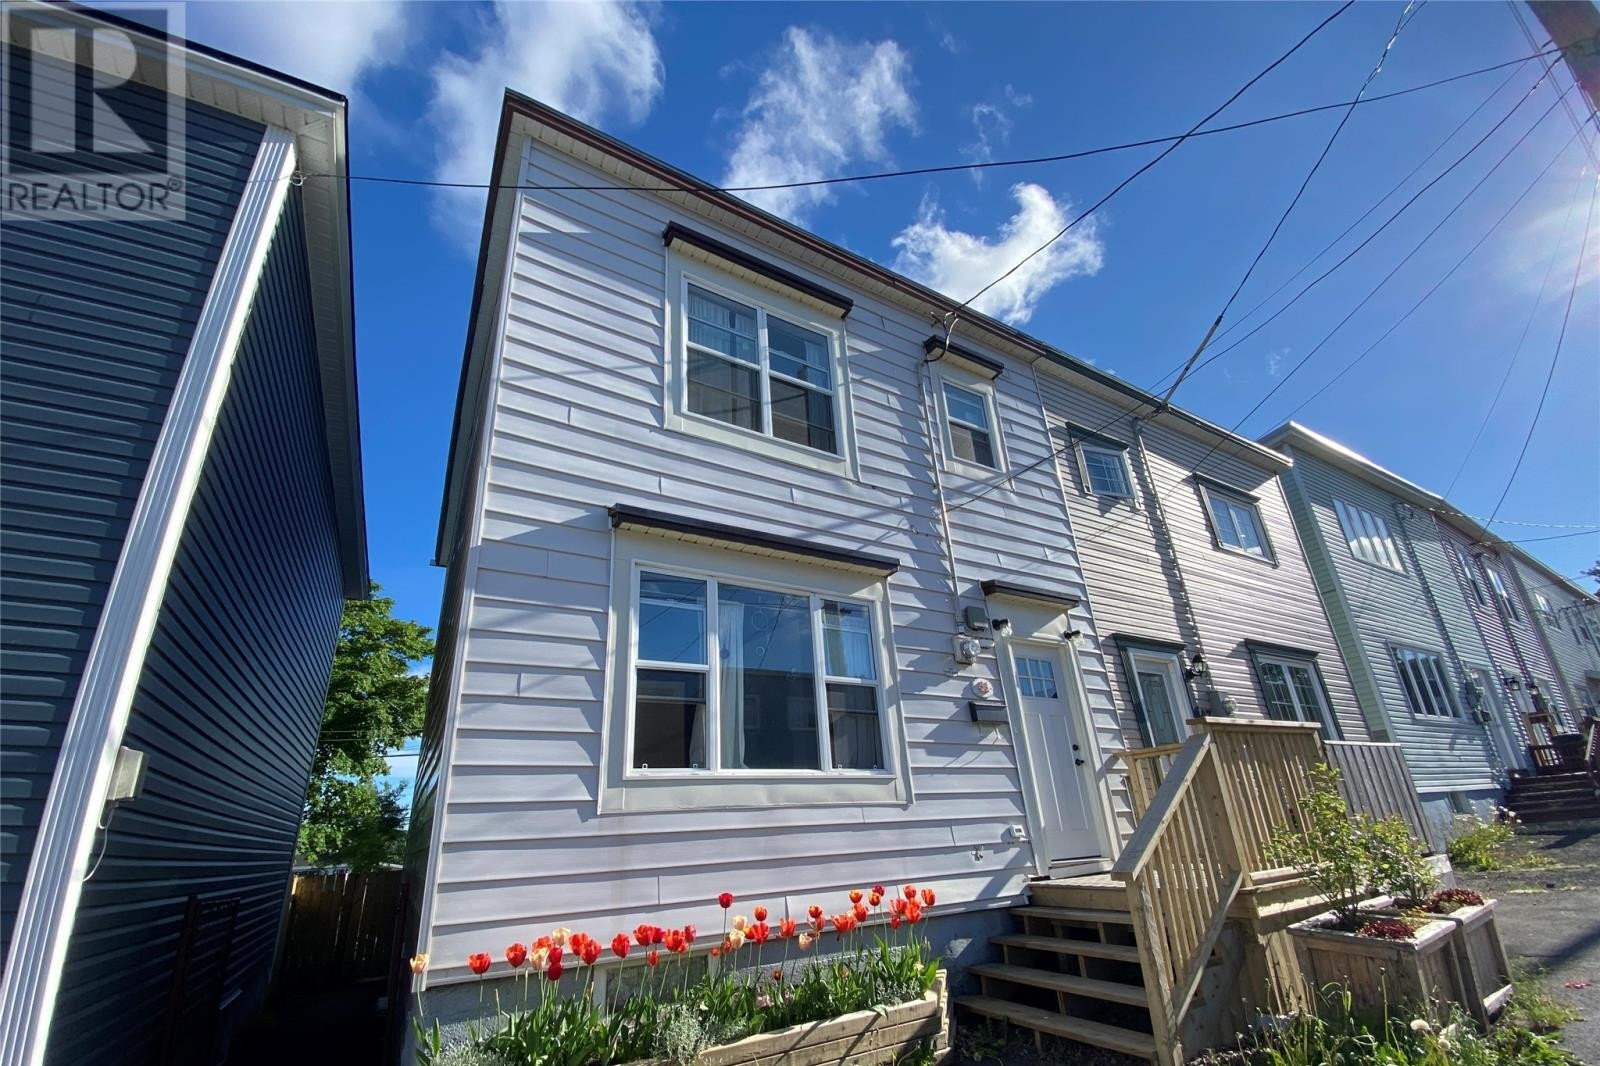 House for sale at 41 Franklyn Ave St. John's Newfoundland - MLS: 1224197